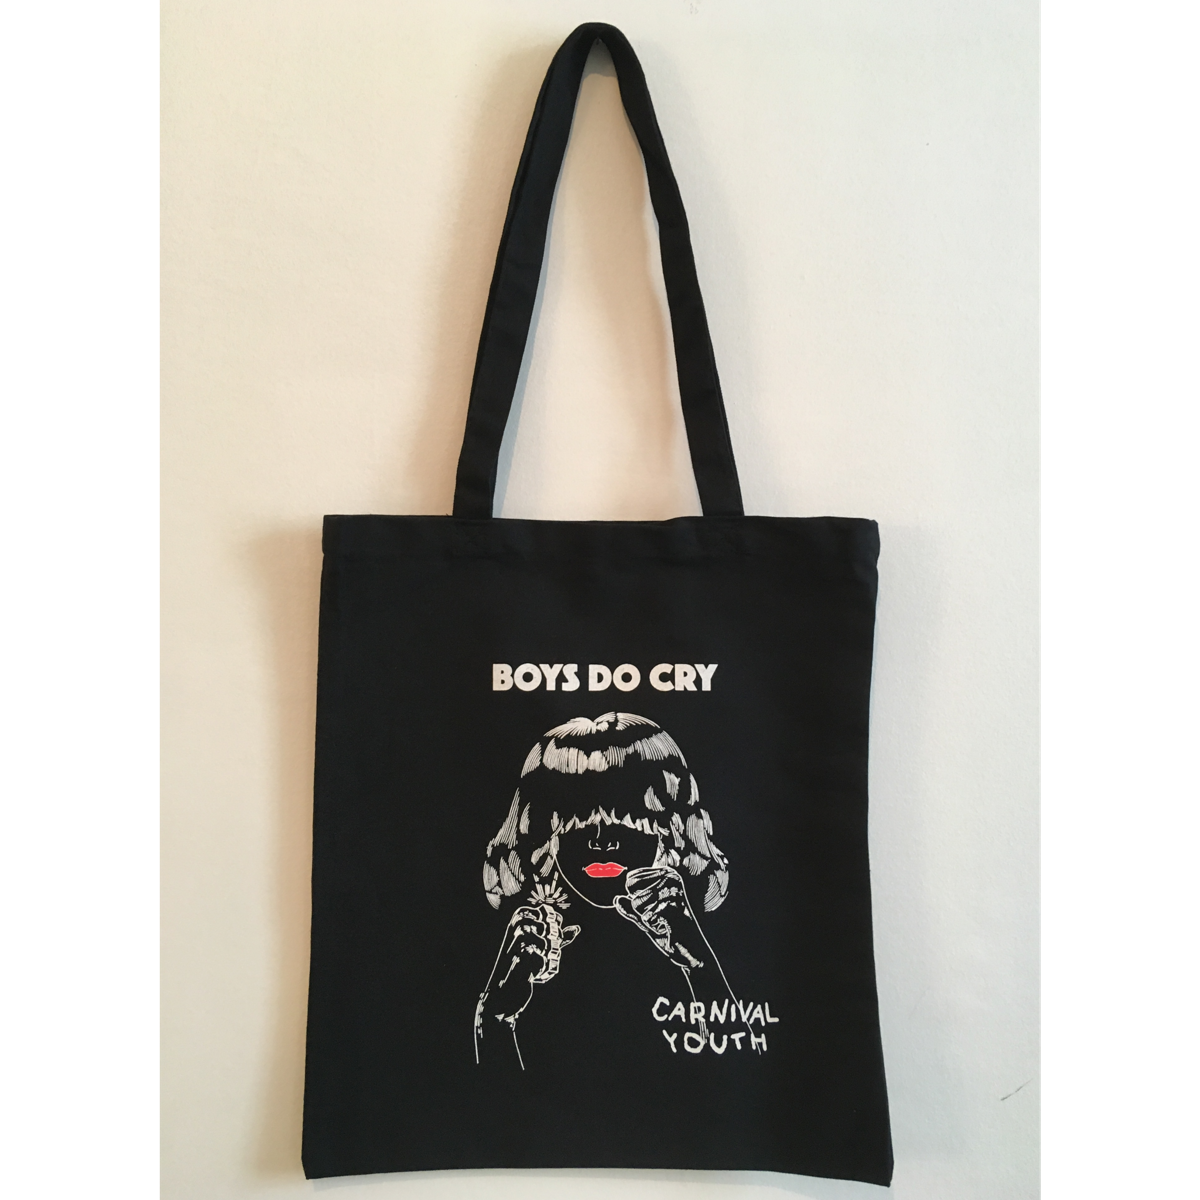 Boys Do Cry Tote Bag - Carnival Youth